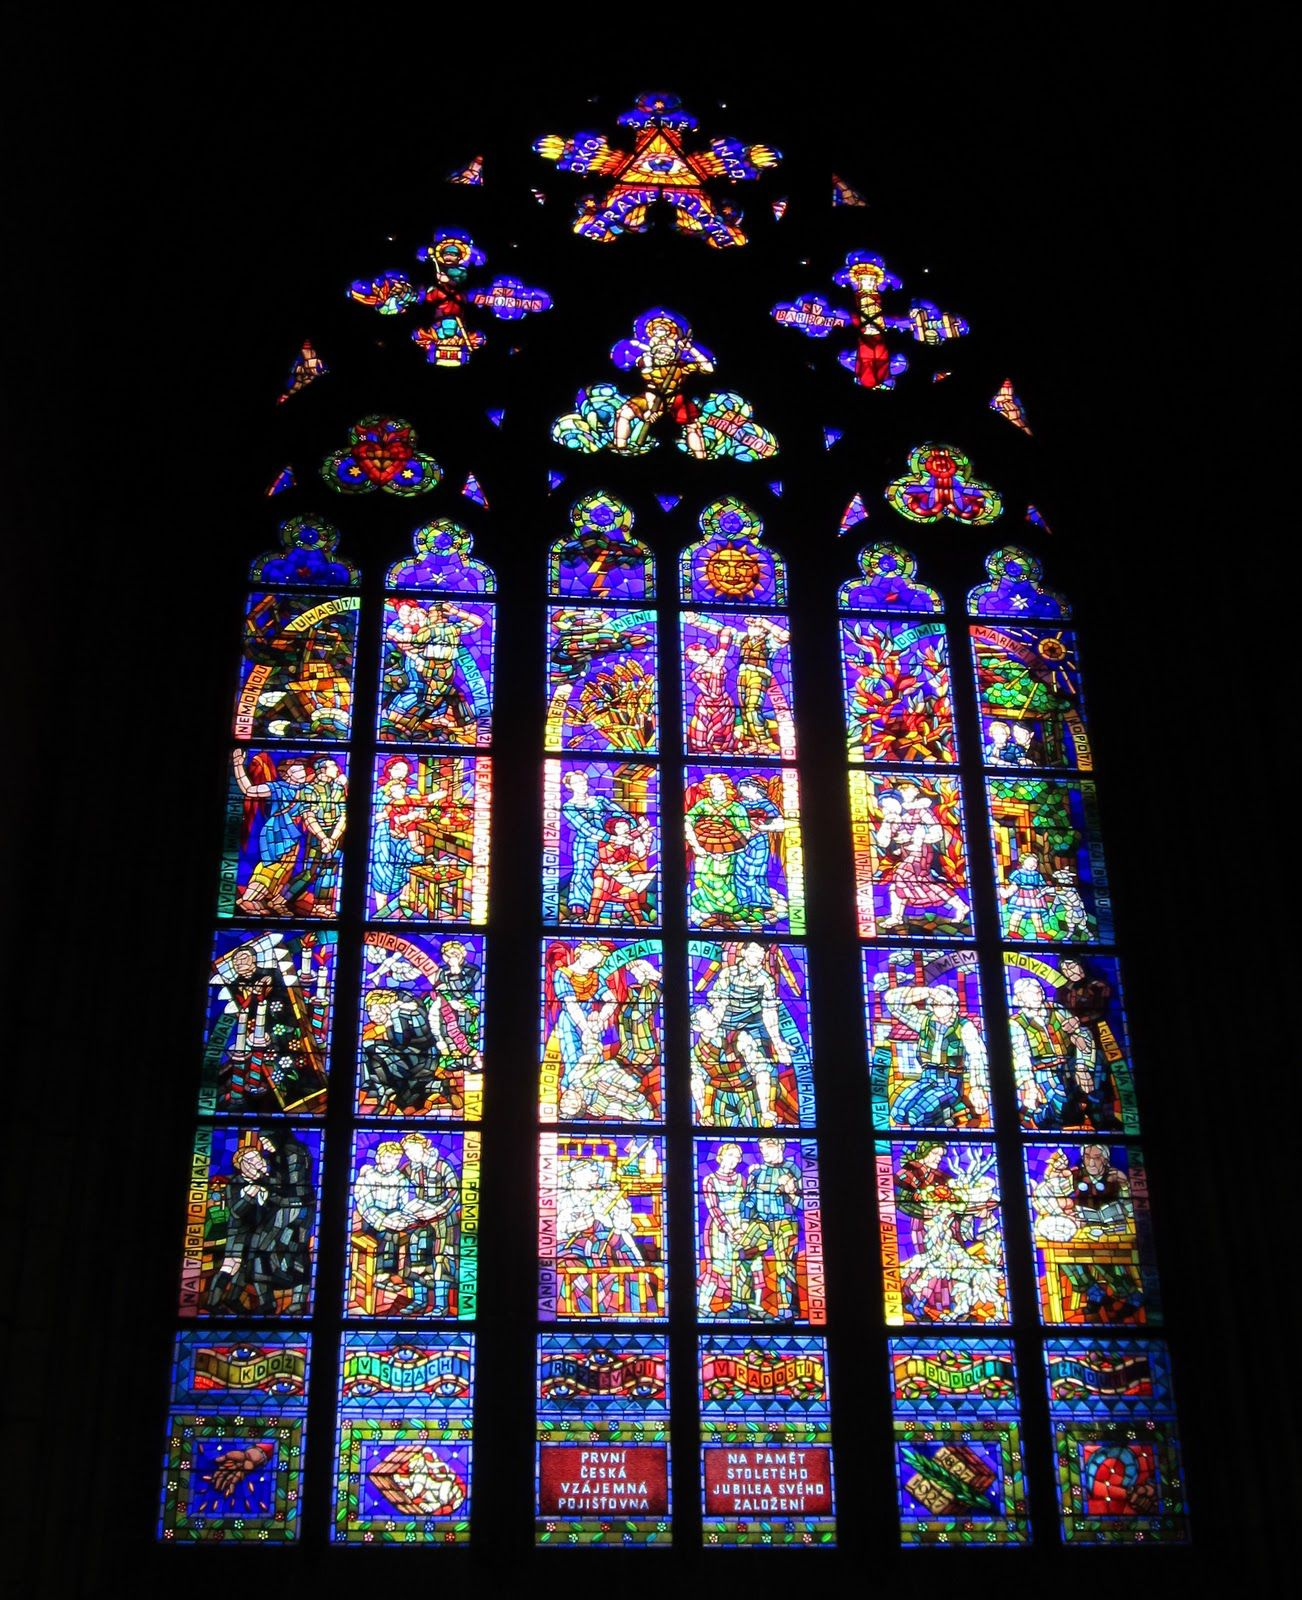 Gothic architecture window images for Architecture windows